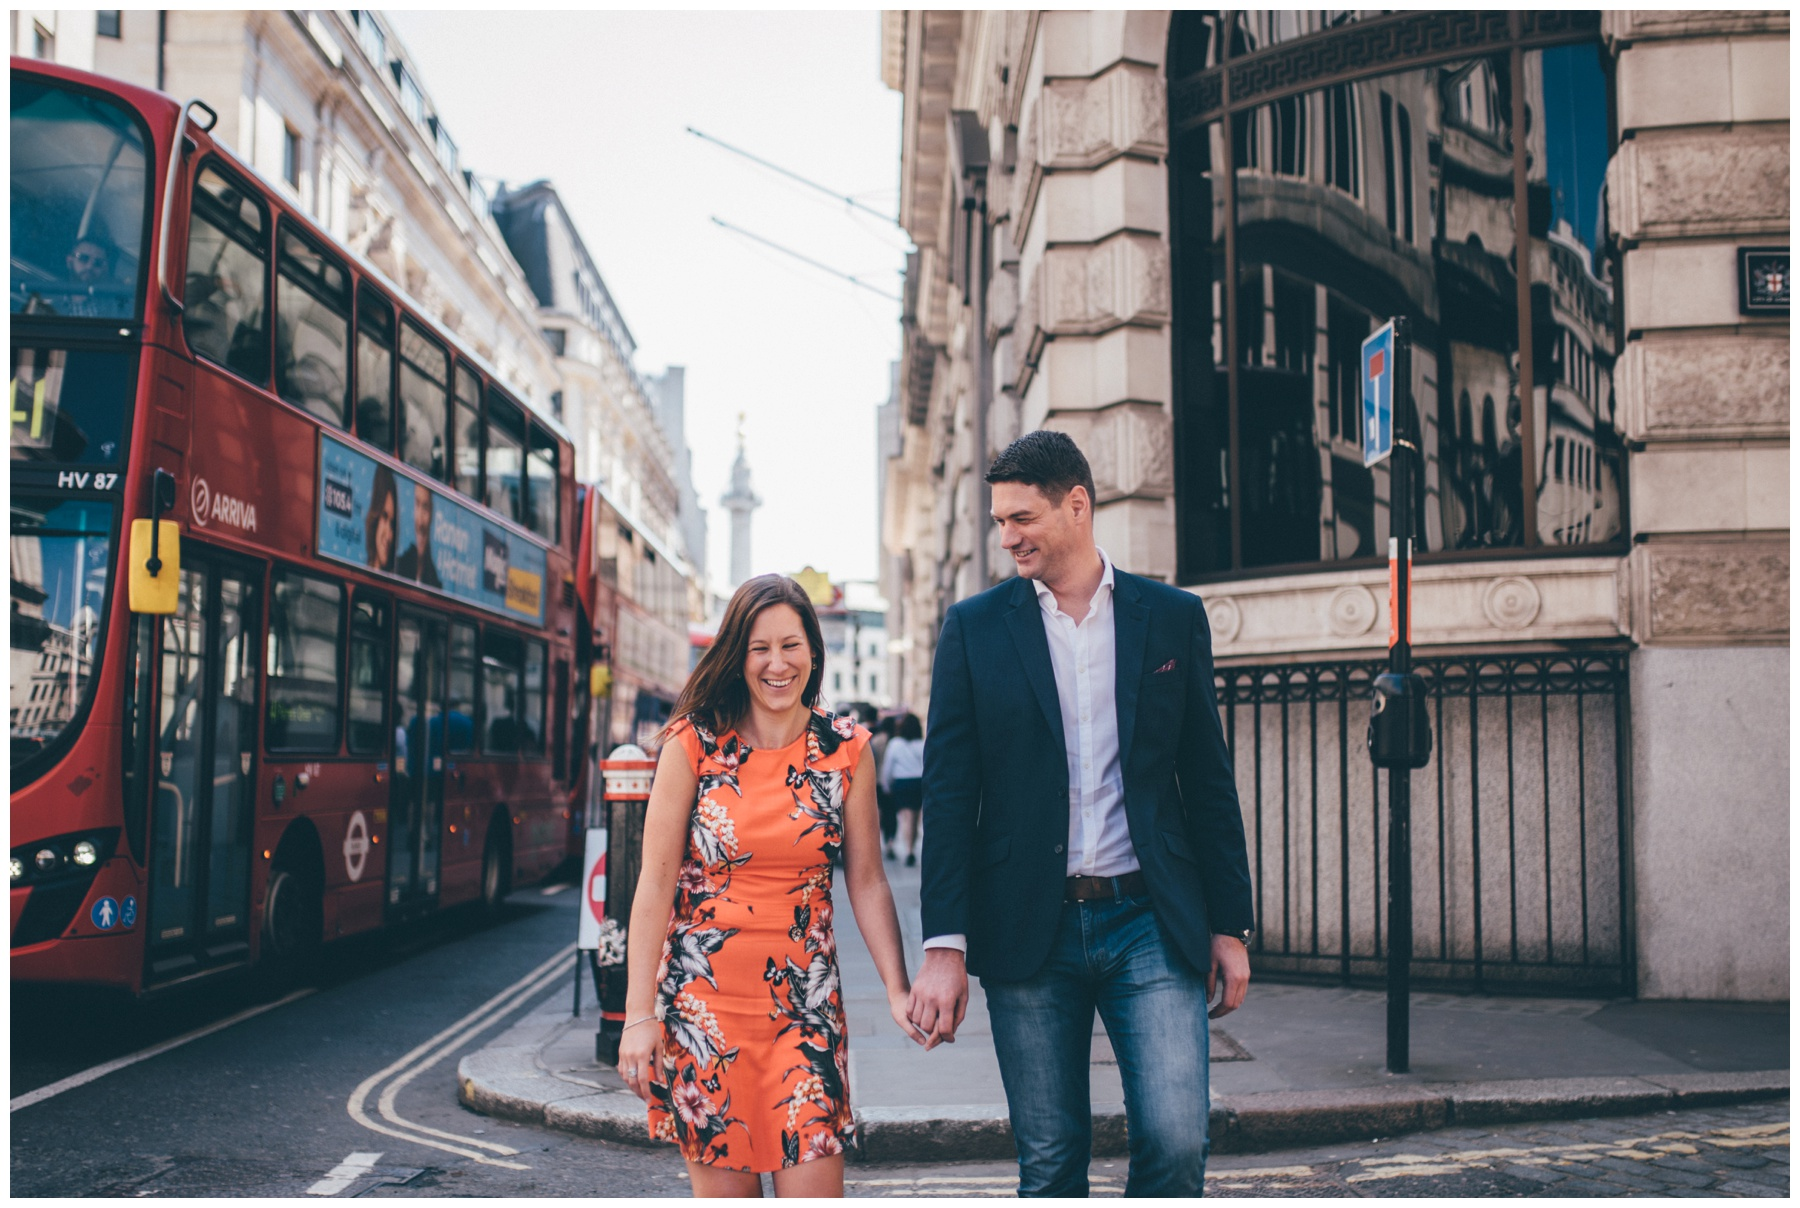 Cute couple stroll through London city centre together for their engagement shoot.